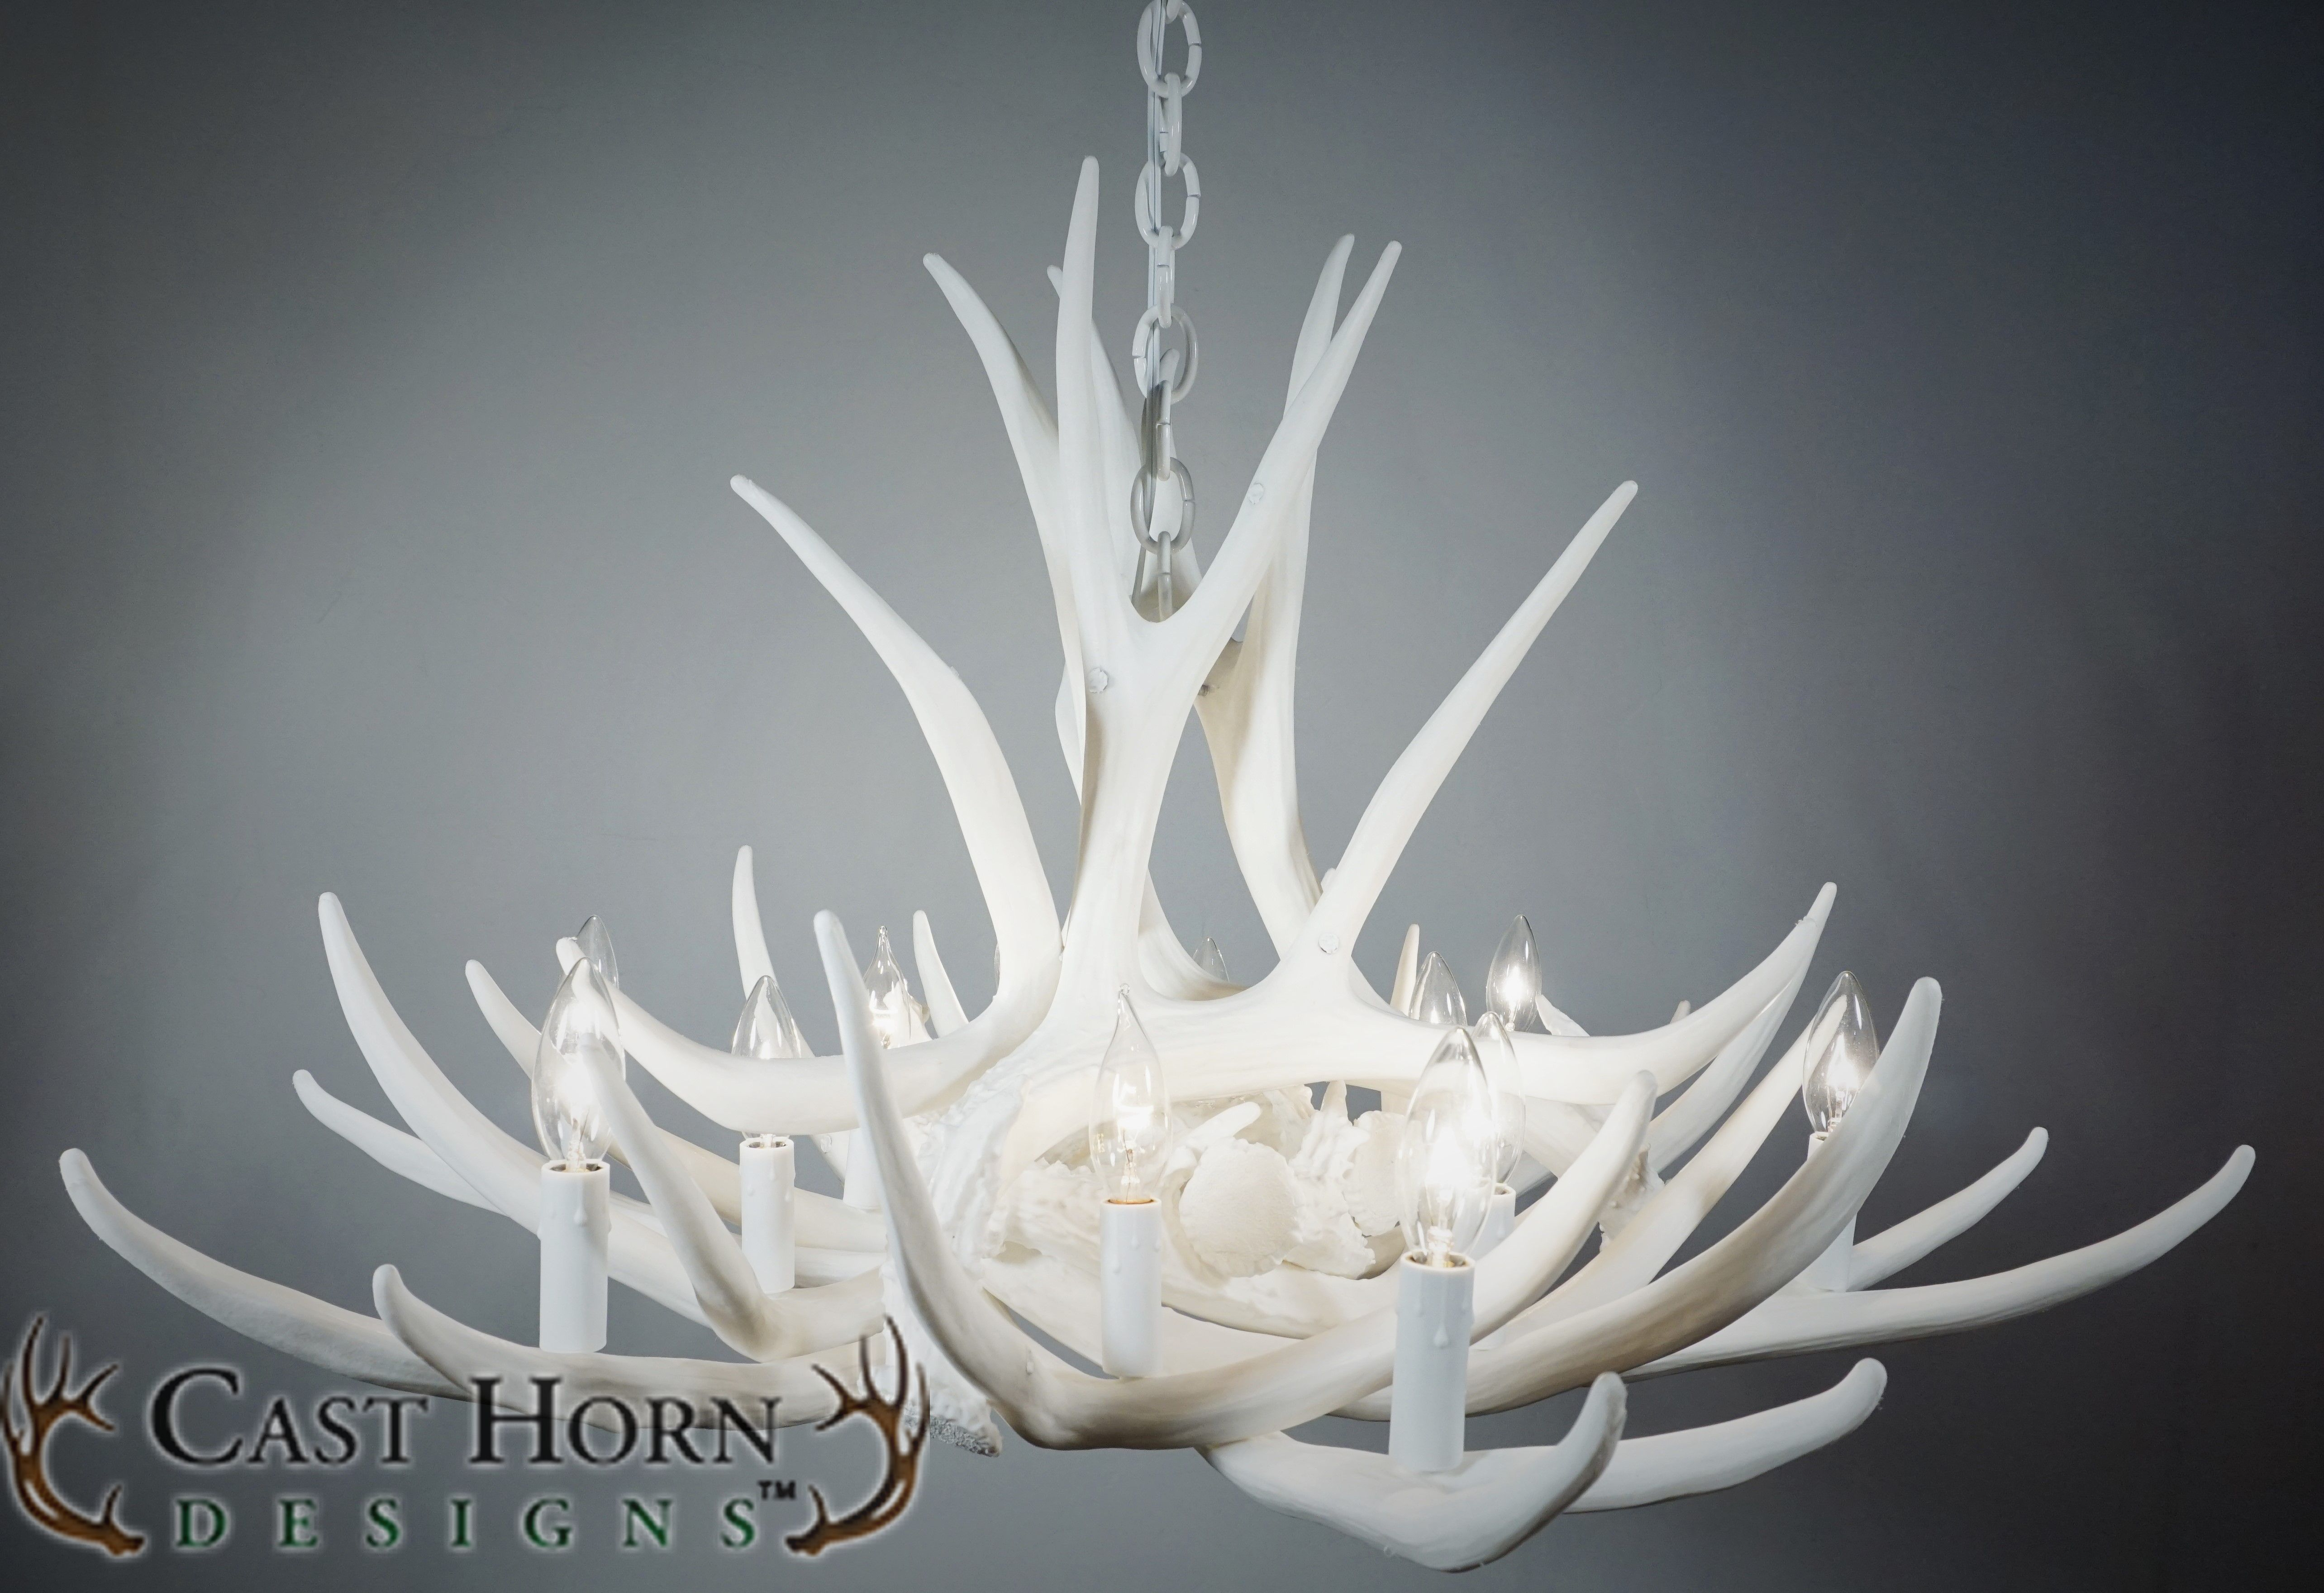 Mule deer 9 antler chandelier pure white by cast horn designs pure white mule deer 9 cast antler chandelier measures 36 wide and 20 tall weighs just 9 lbs mozeypictures Images